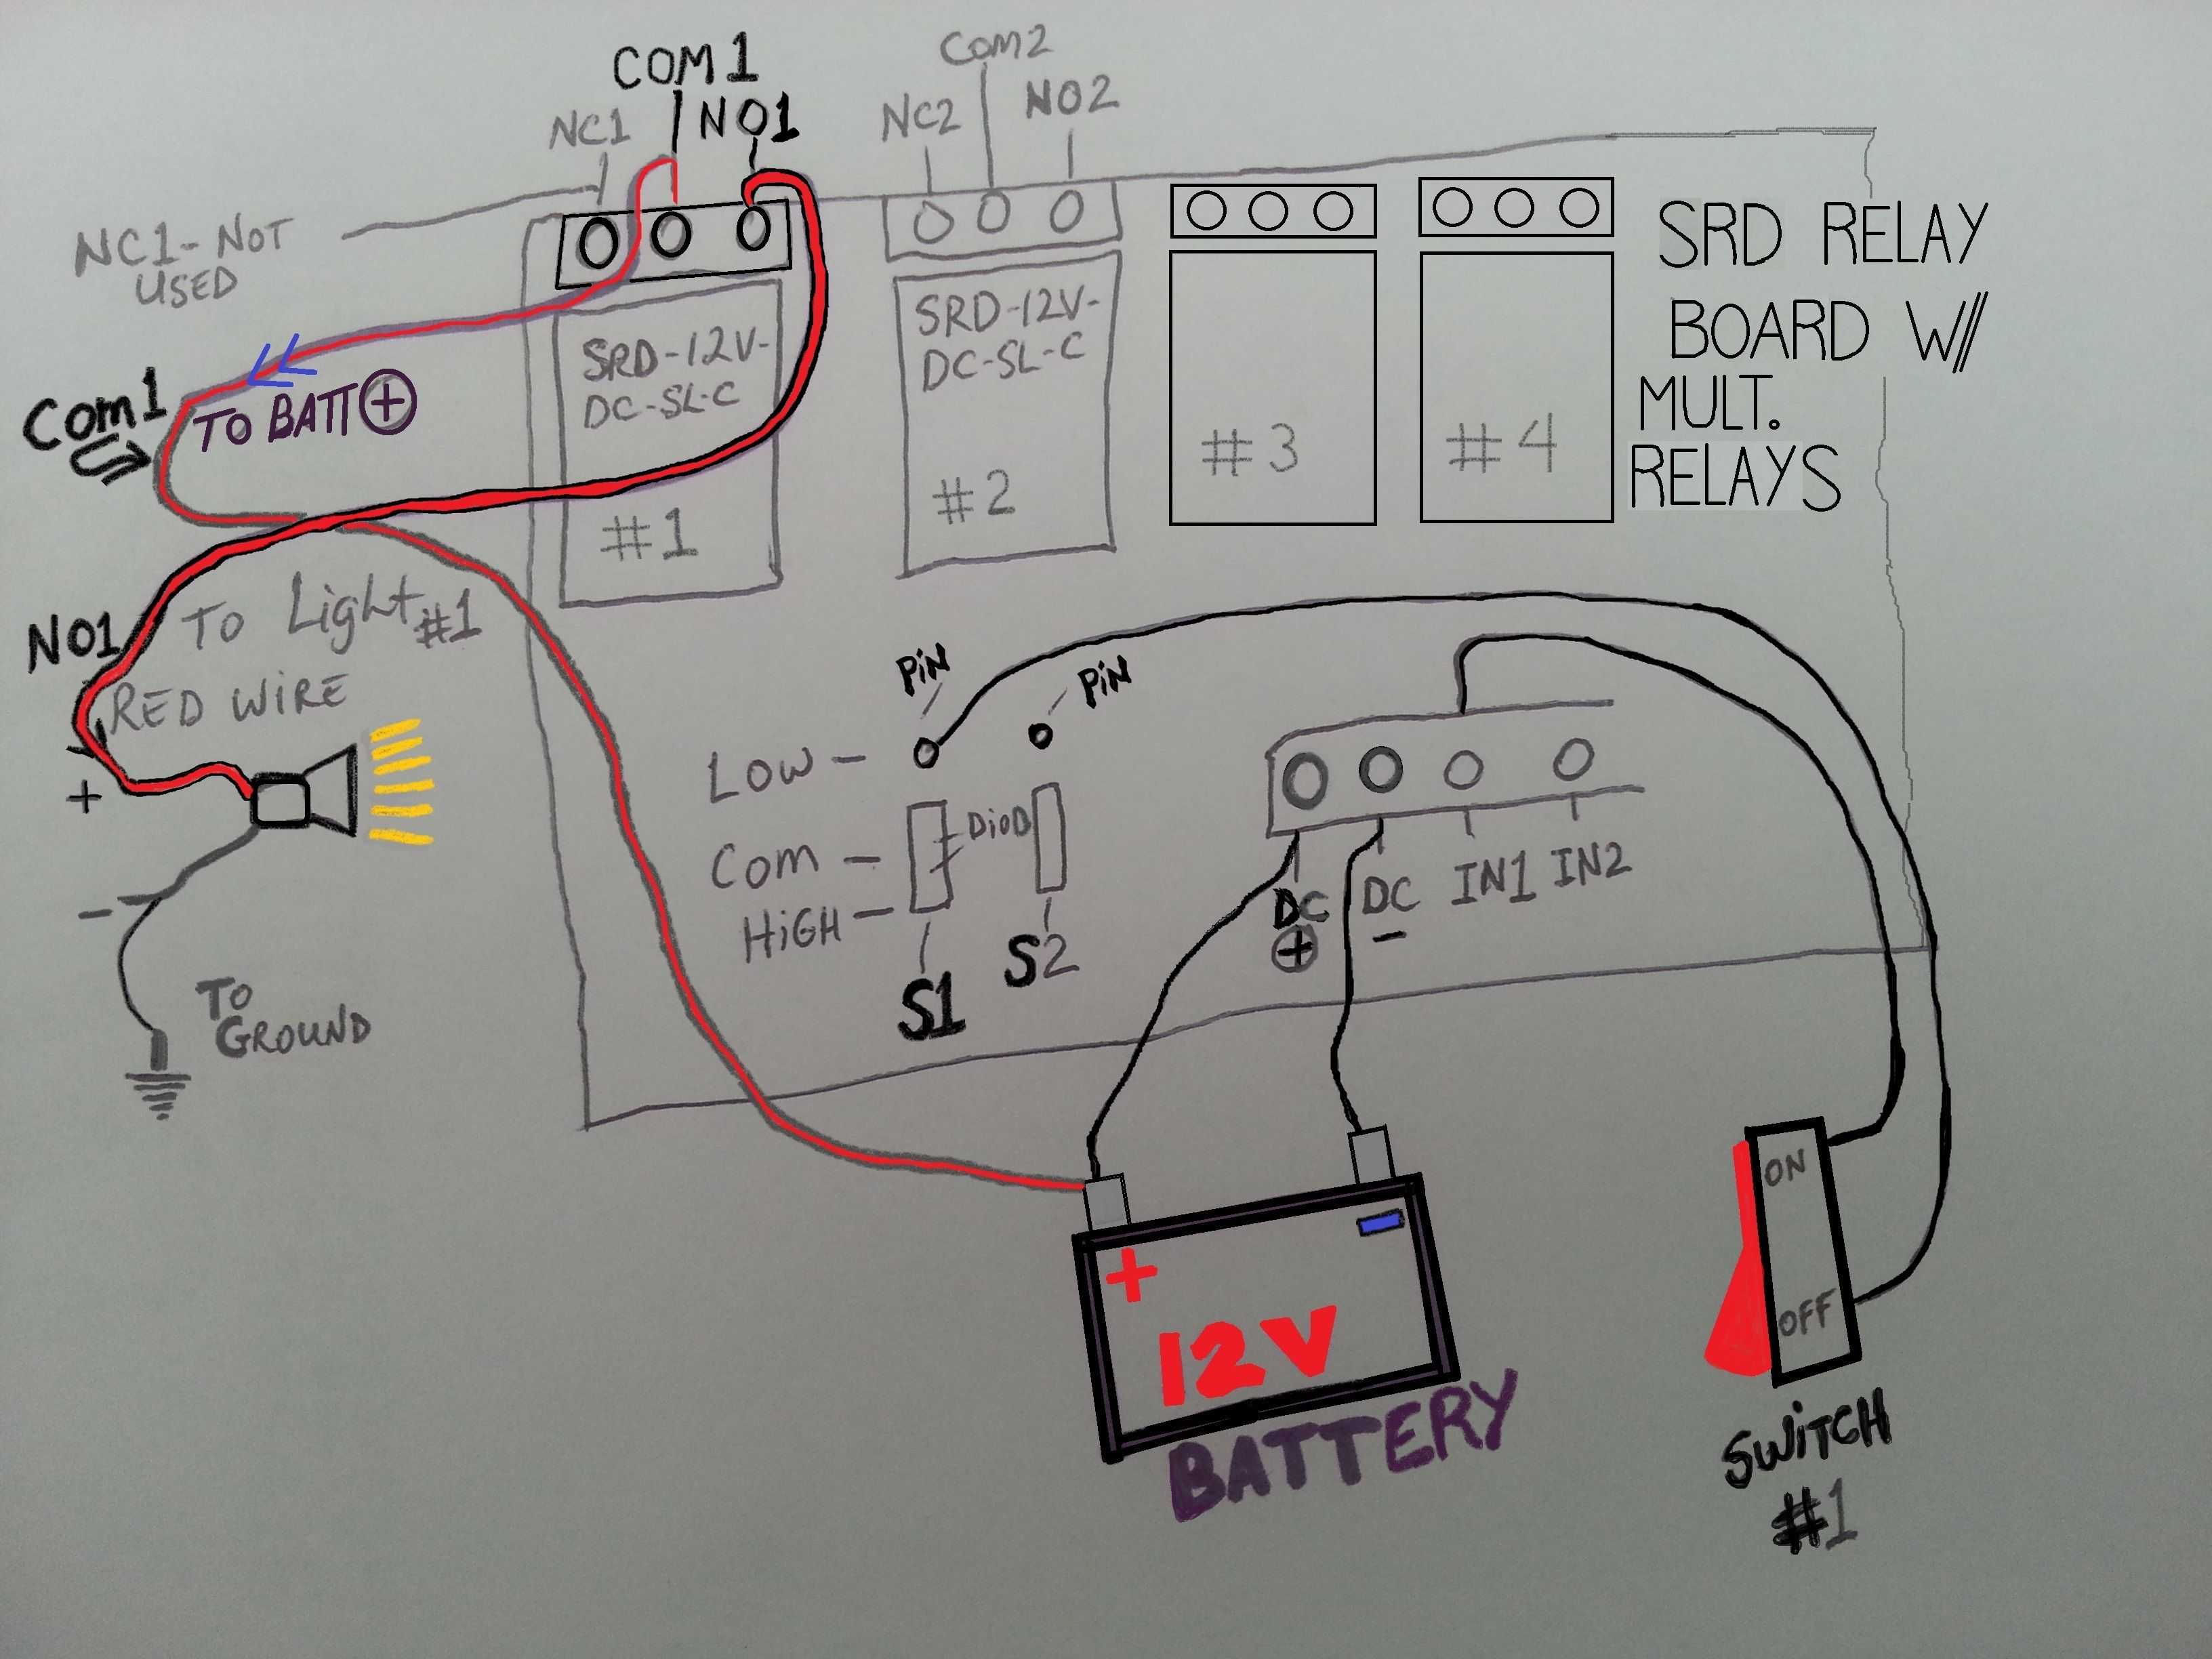 Relay Board Wiring Diagrams Electrical Diagram Schematics Megasquirt For Srd Multiple Relays On One 5 Blade